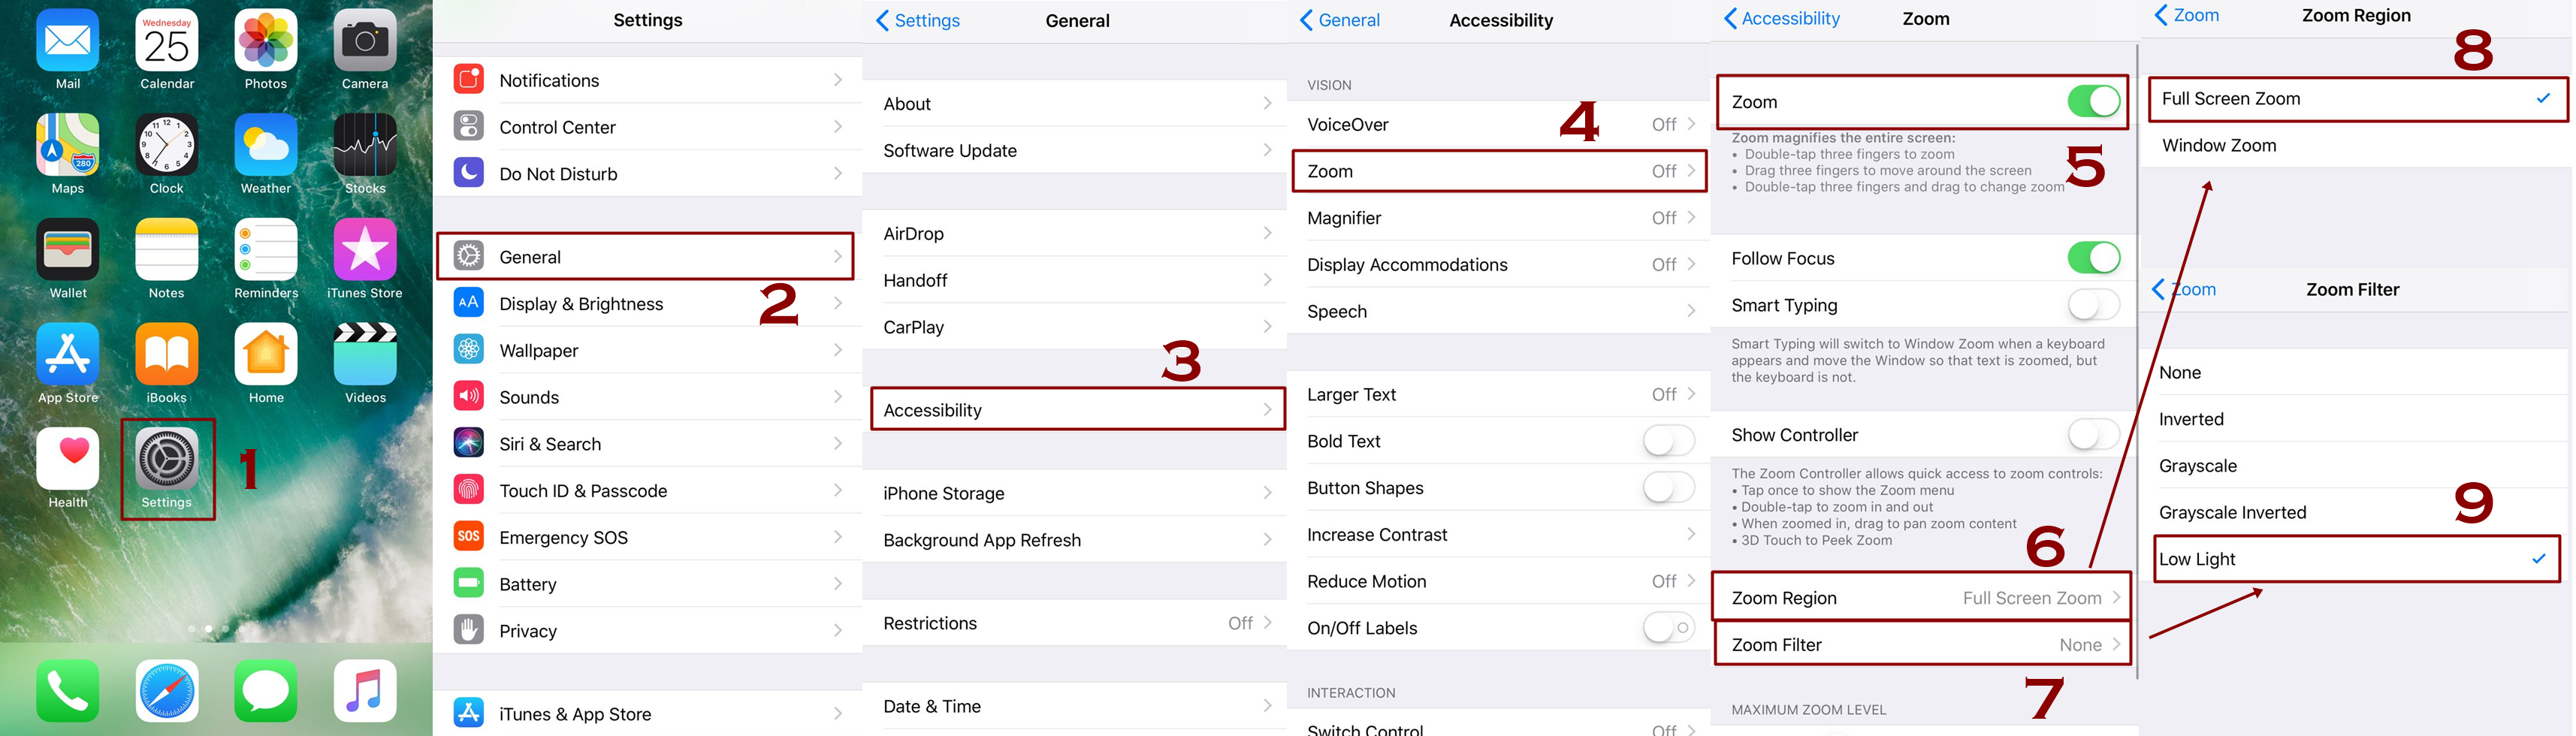 how to make iphone screen darker iphone - How to Adjust the Screen Brightness on iPhone